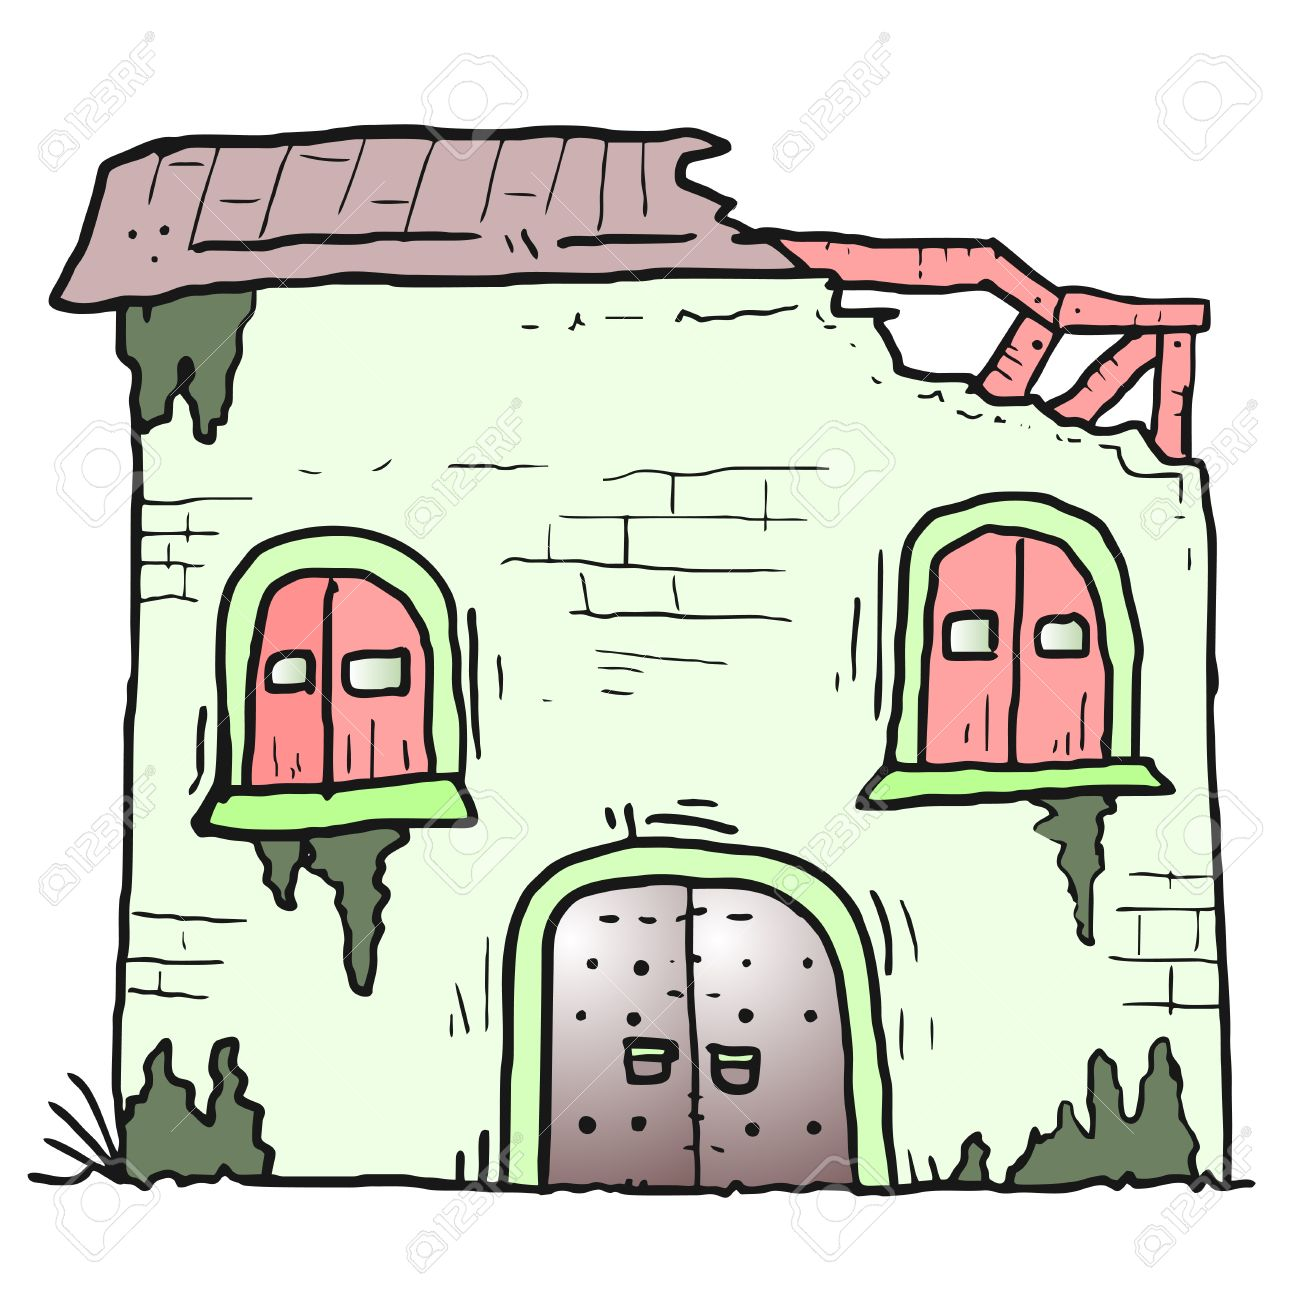 Destroyed house clipart.